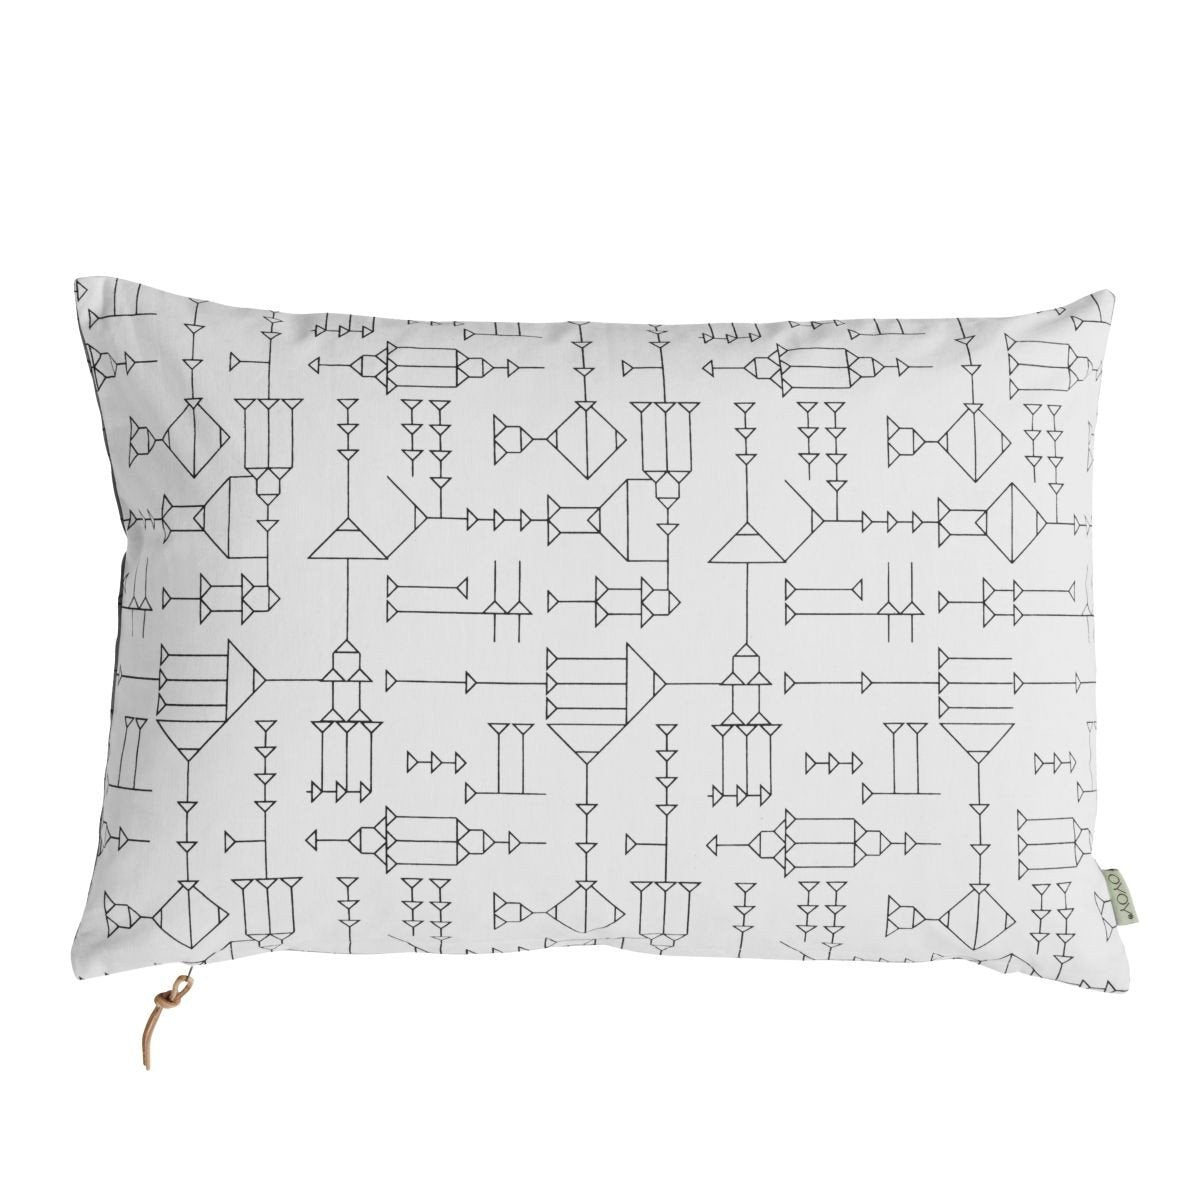 Cave Cushion in Grey & White design by OYOY